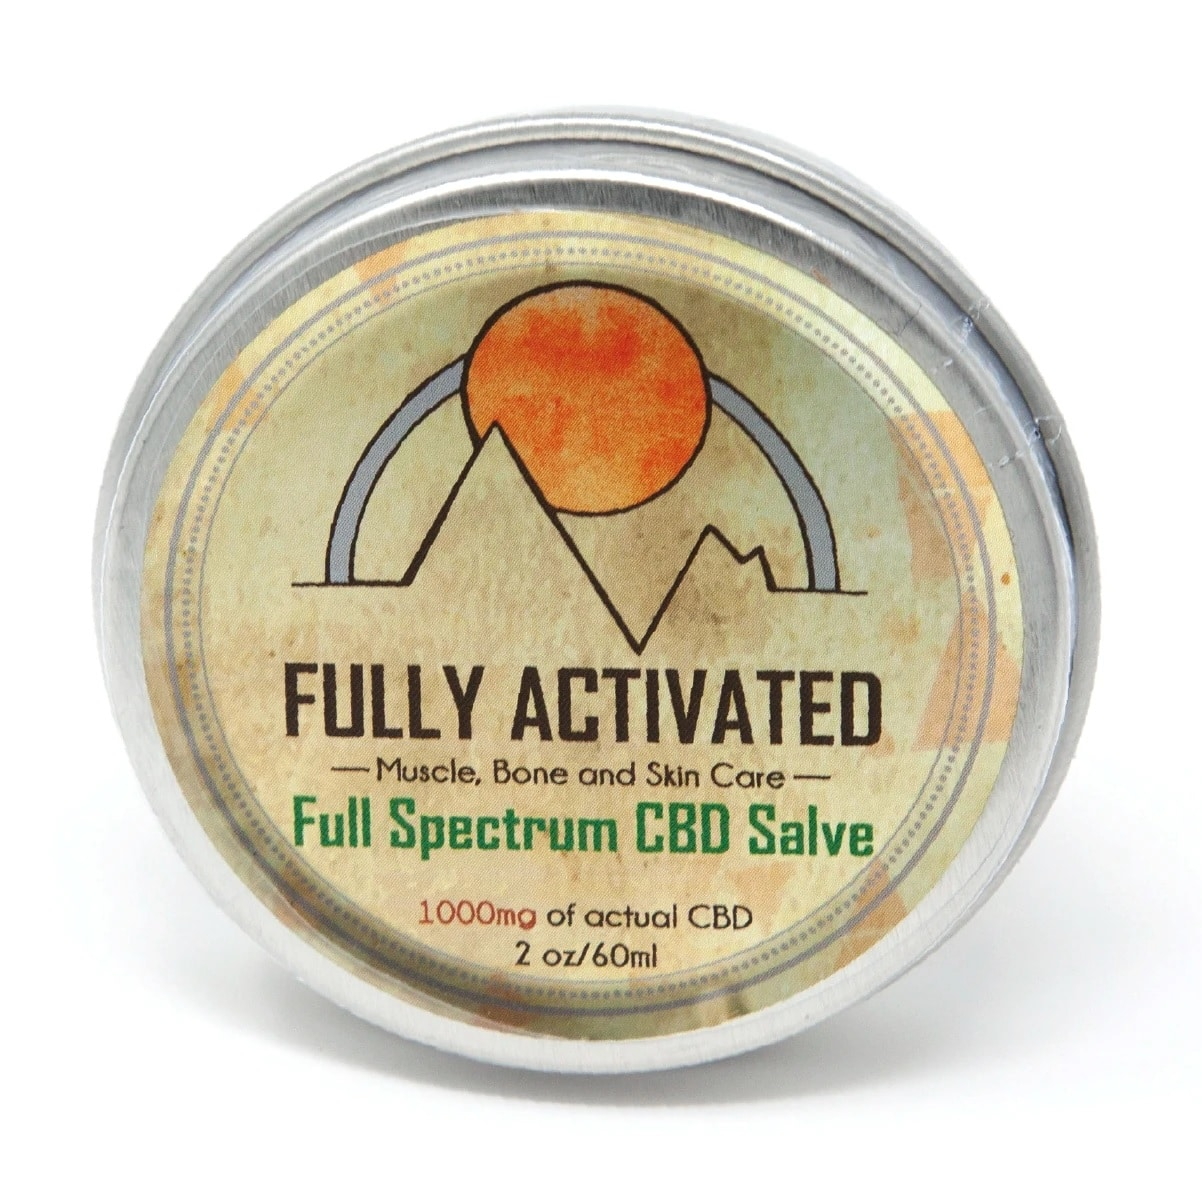 Image for Fully Activated - Full Spectrum Salve